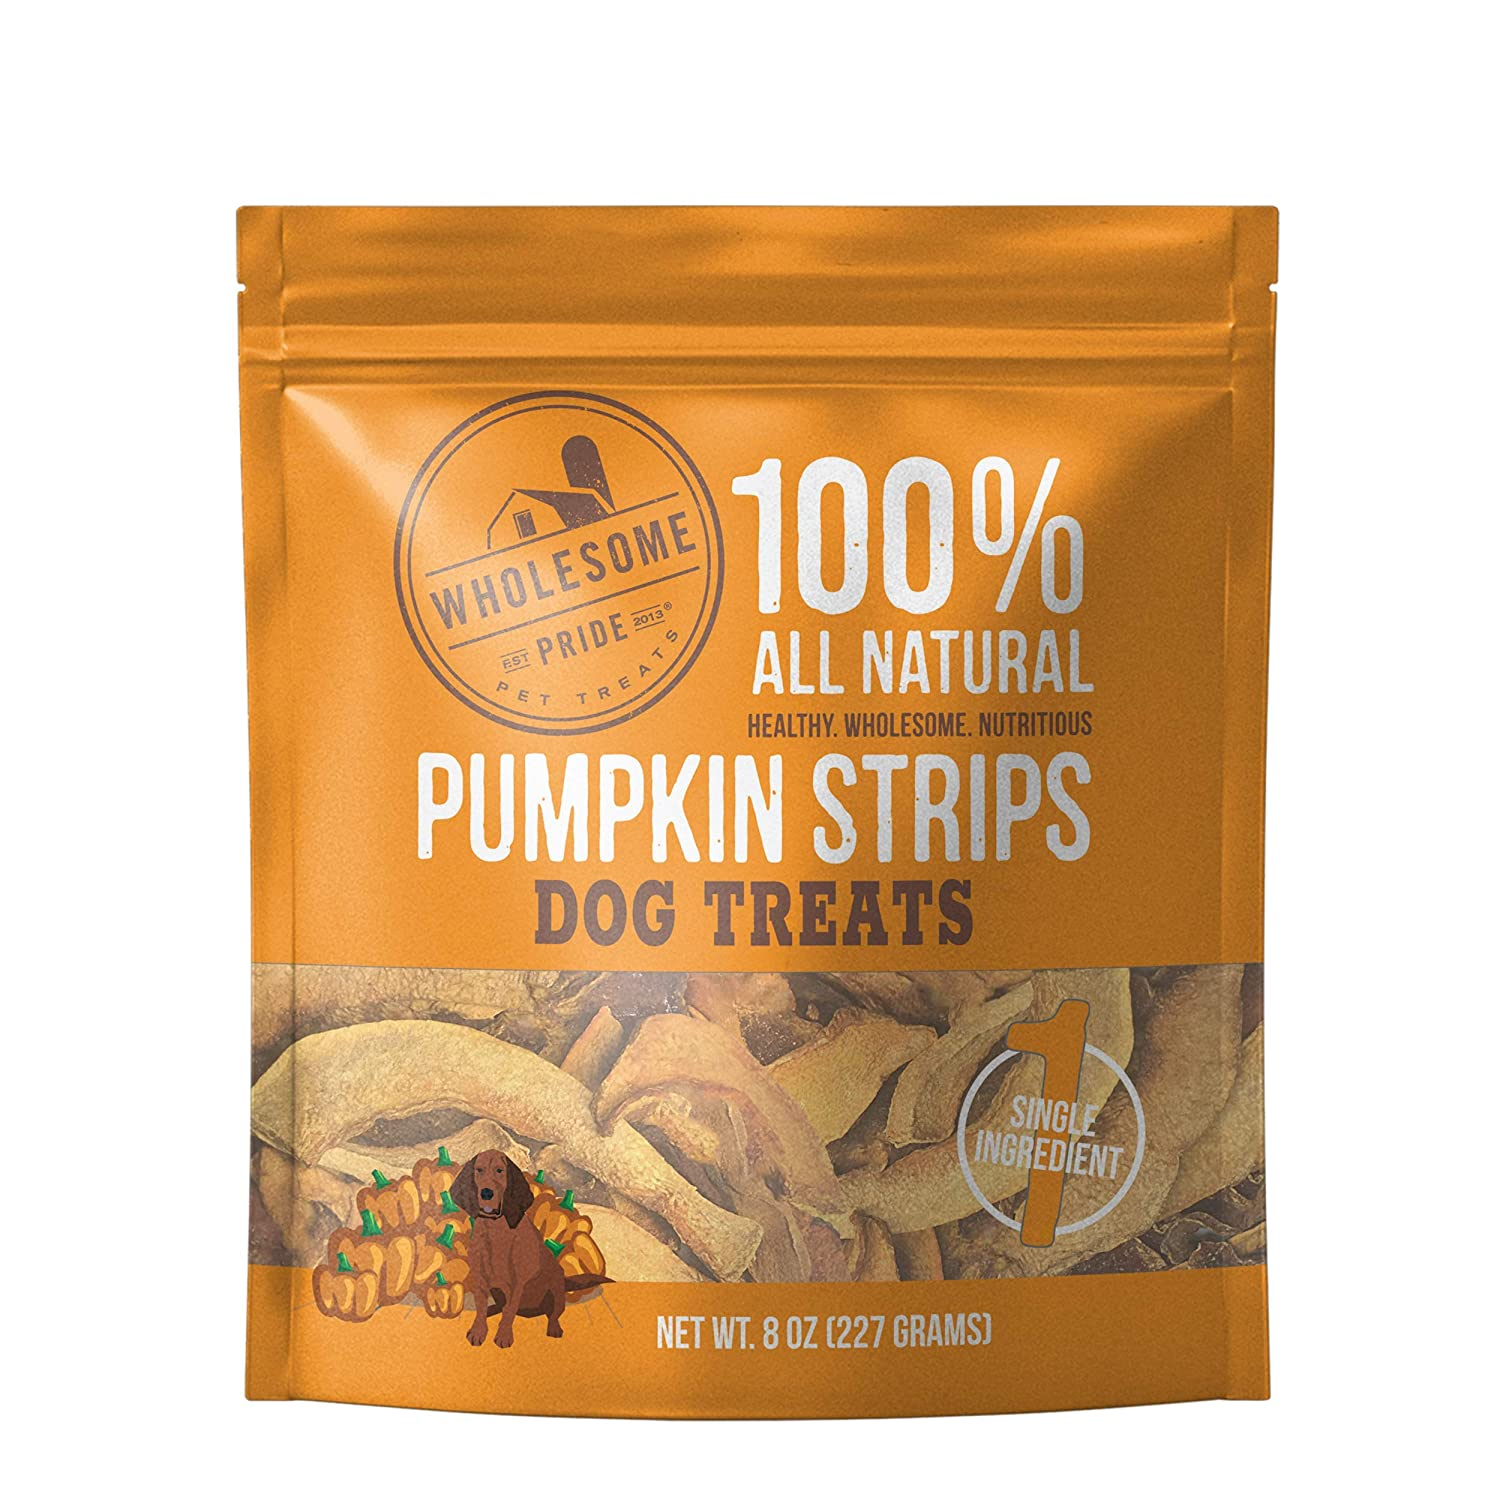 Wholesome Pride Pumpkin Strips - All Natural Healthy Dog Treats - Vegan, Gluten and Grain-Free Dog Snacks